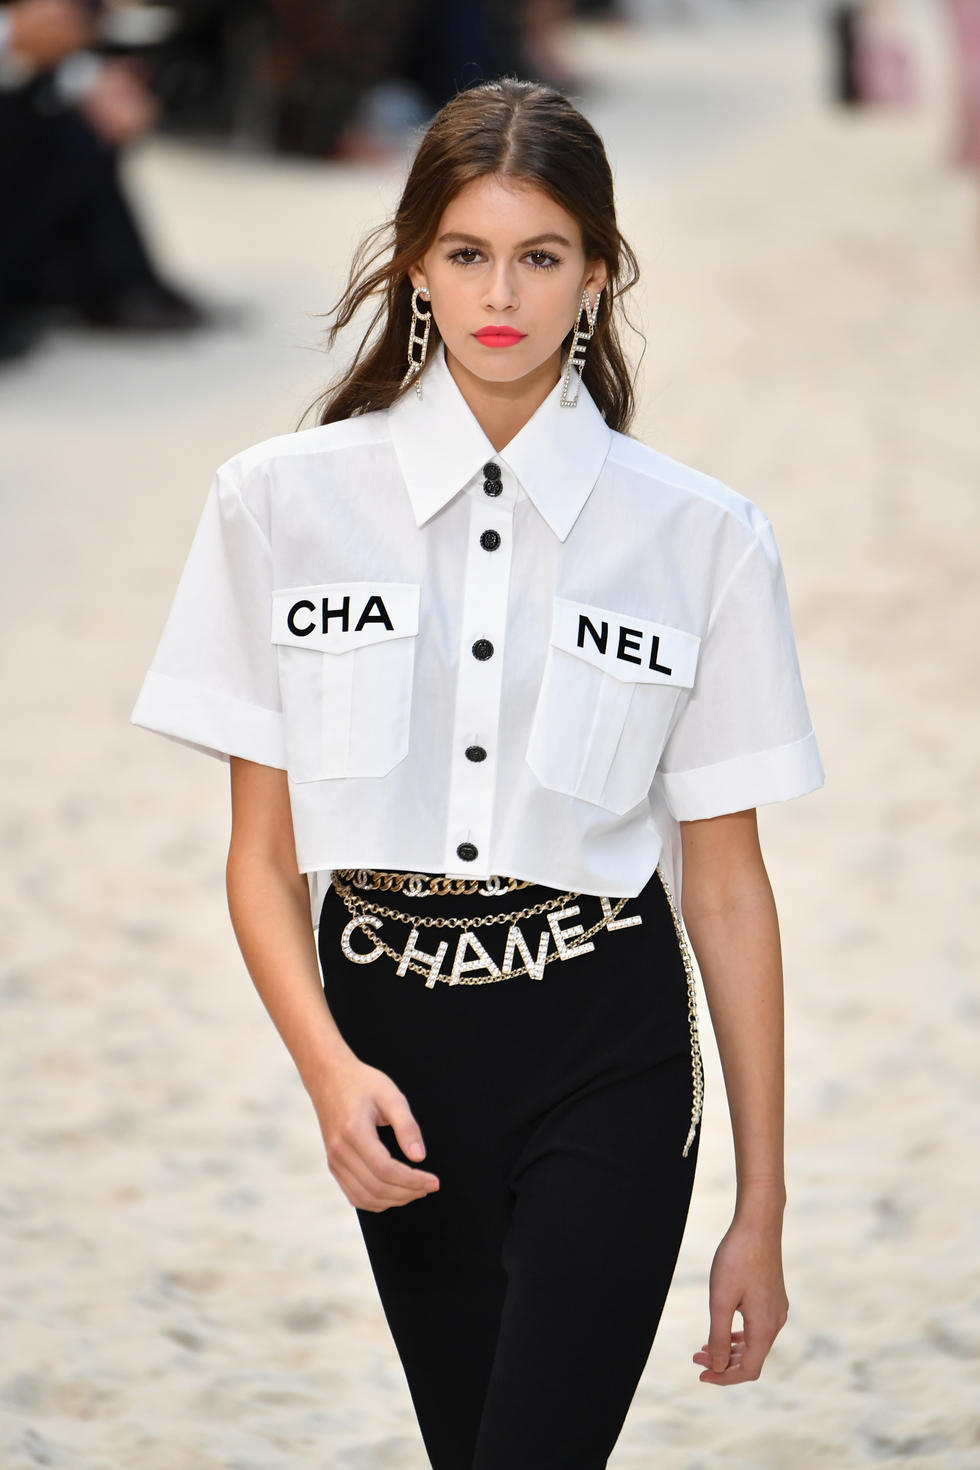 ALPHABET CHARMS -  Yeah, it's a little strange, but we're digging the way it looks. Tell the world what you're wearing without saying a word.  Chanel SS19